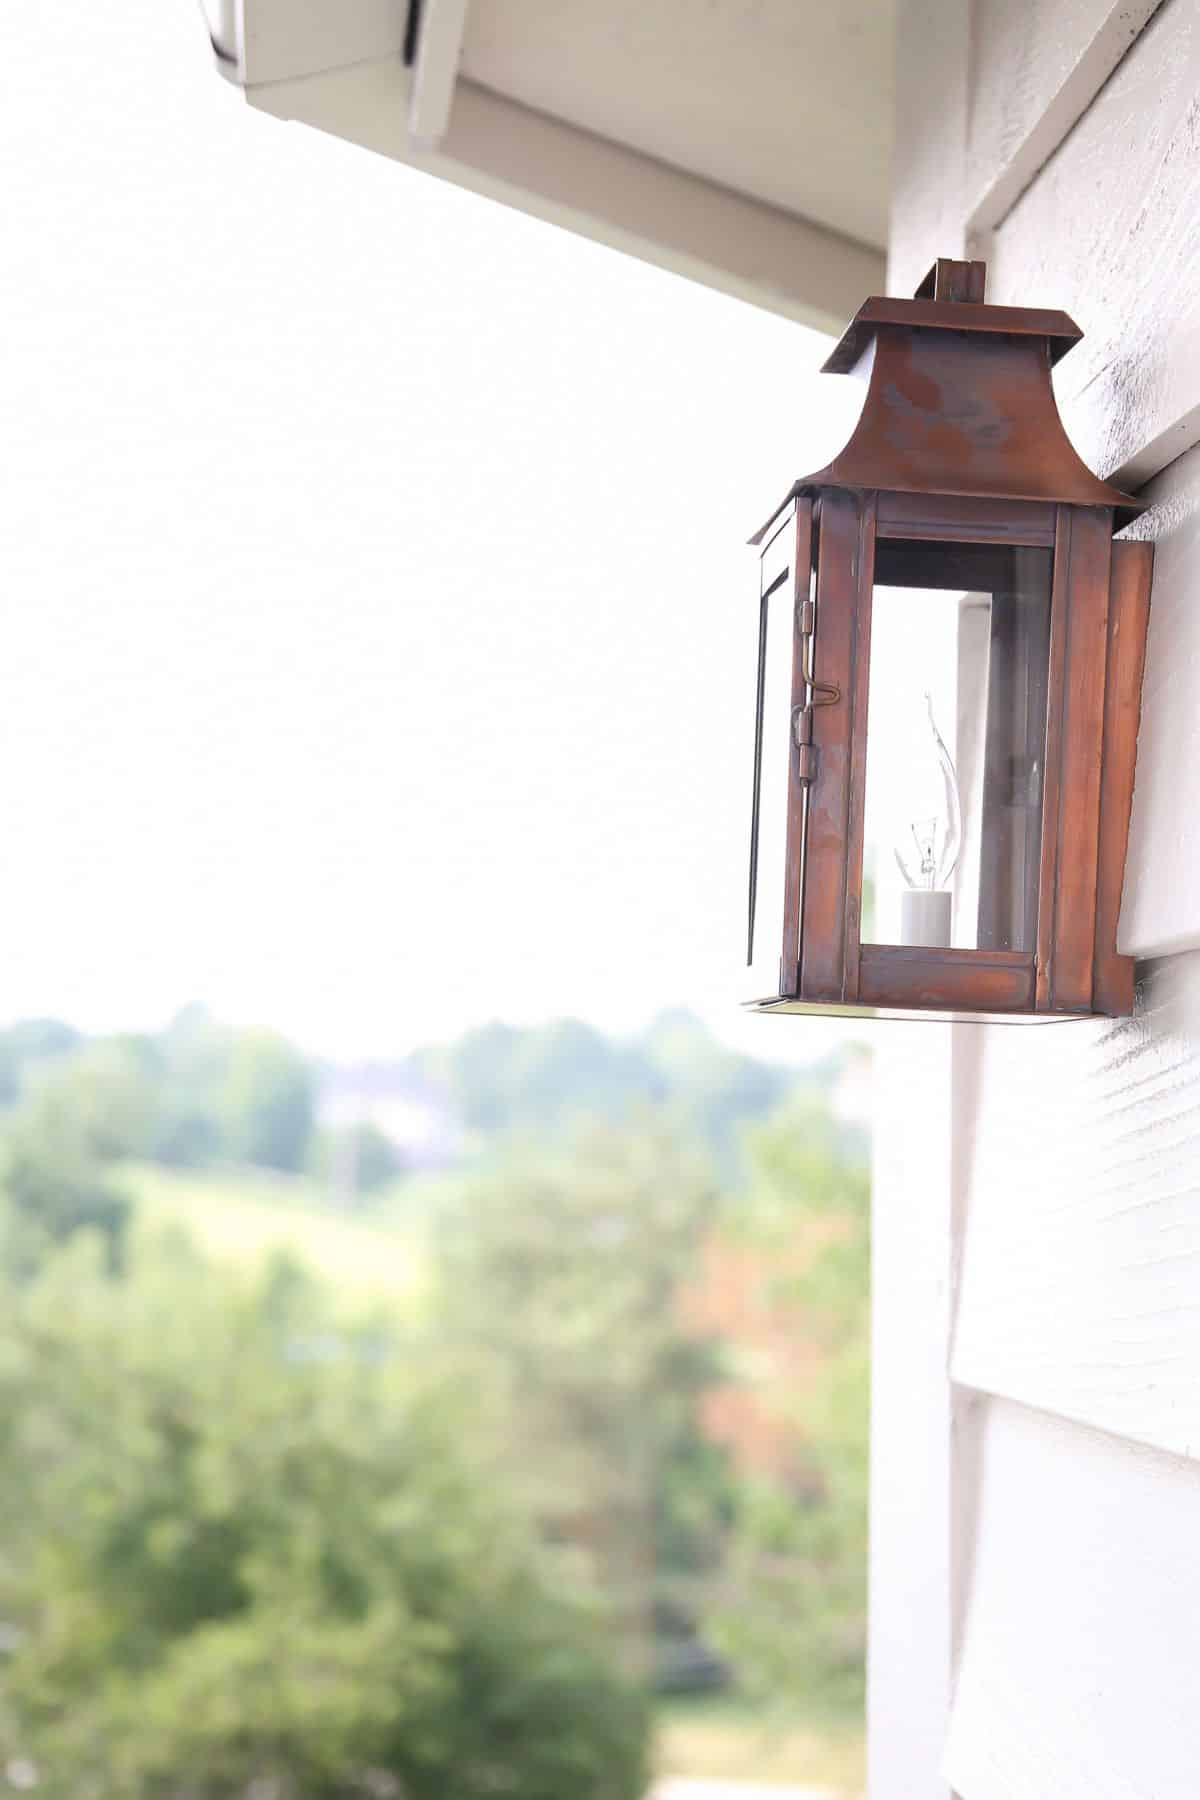 A copper lantern on the side of a house, trees in the background.